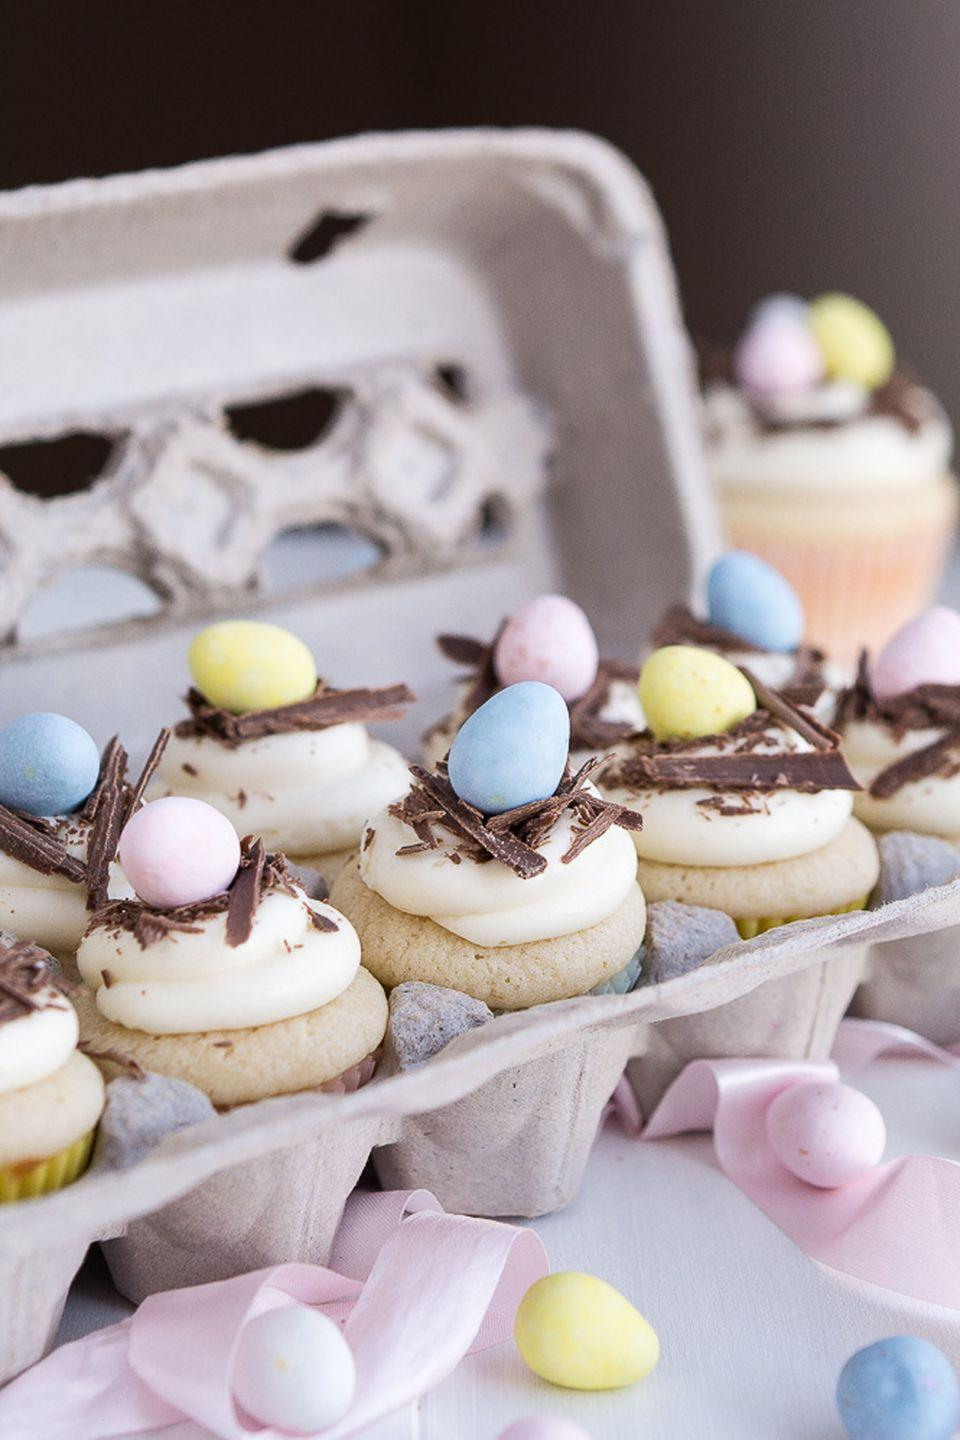 """<p>The frosting and cupcake flavors are completely up to you. Choose from vanilla, chocolate, strawberry, carrot, and more. </p><p>Get the full recipe from <a href=""""https://www.garnishandglaze.com/white-chocolate-easter-egg-cupcakes/"""" rel=""""nofollow noopener"""" target=""""_blank"""" data-ylk=""""slk:Garnish and Glaze"""" class=""""link rapid-noclick-resp"""">Garnish and Glaze</a>.</p>"""